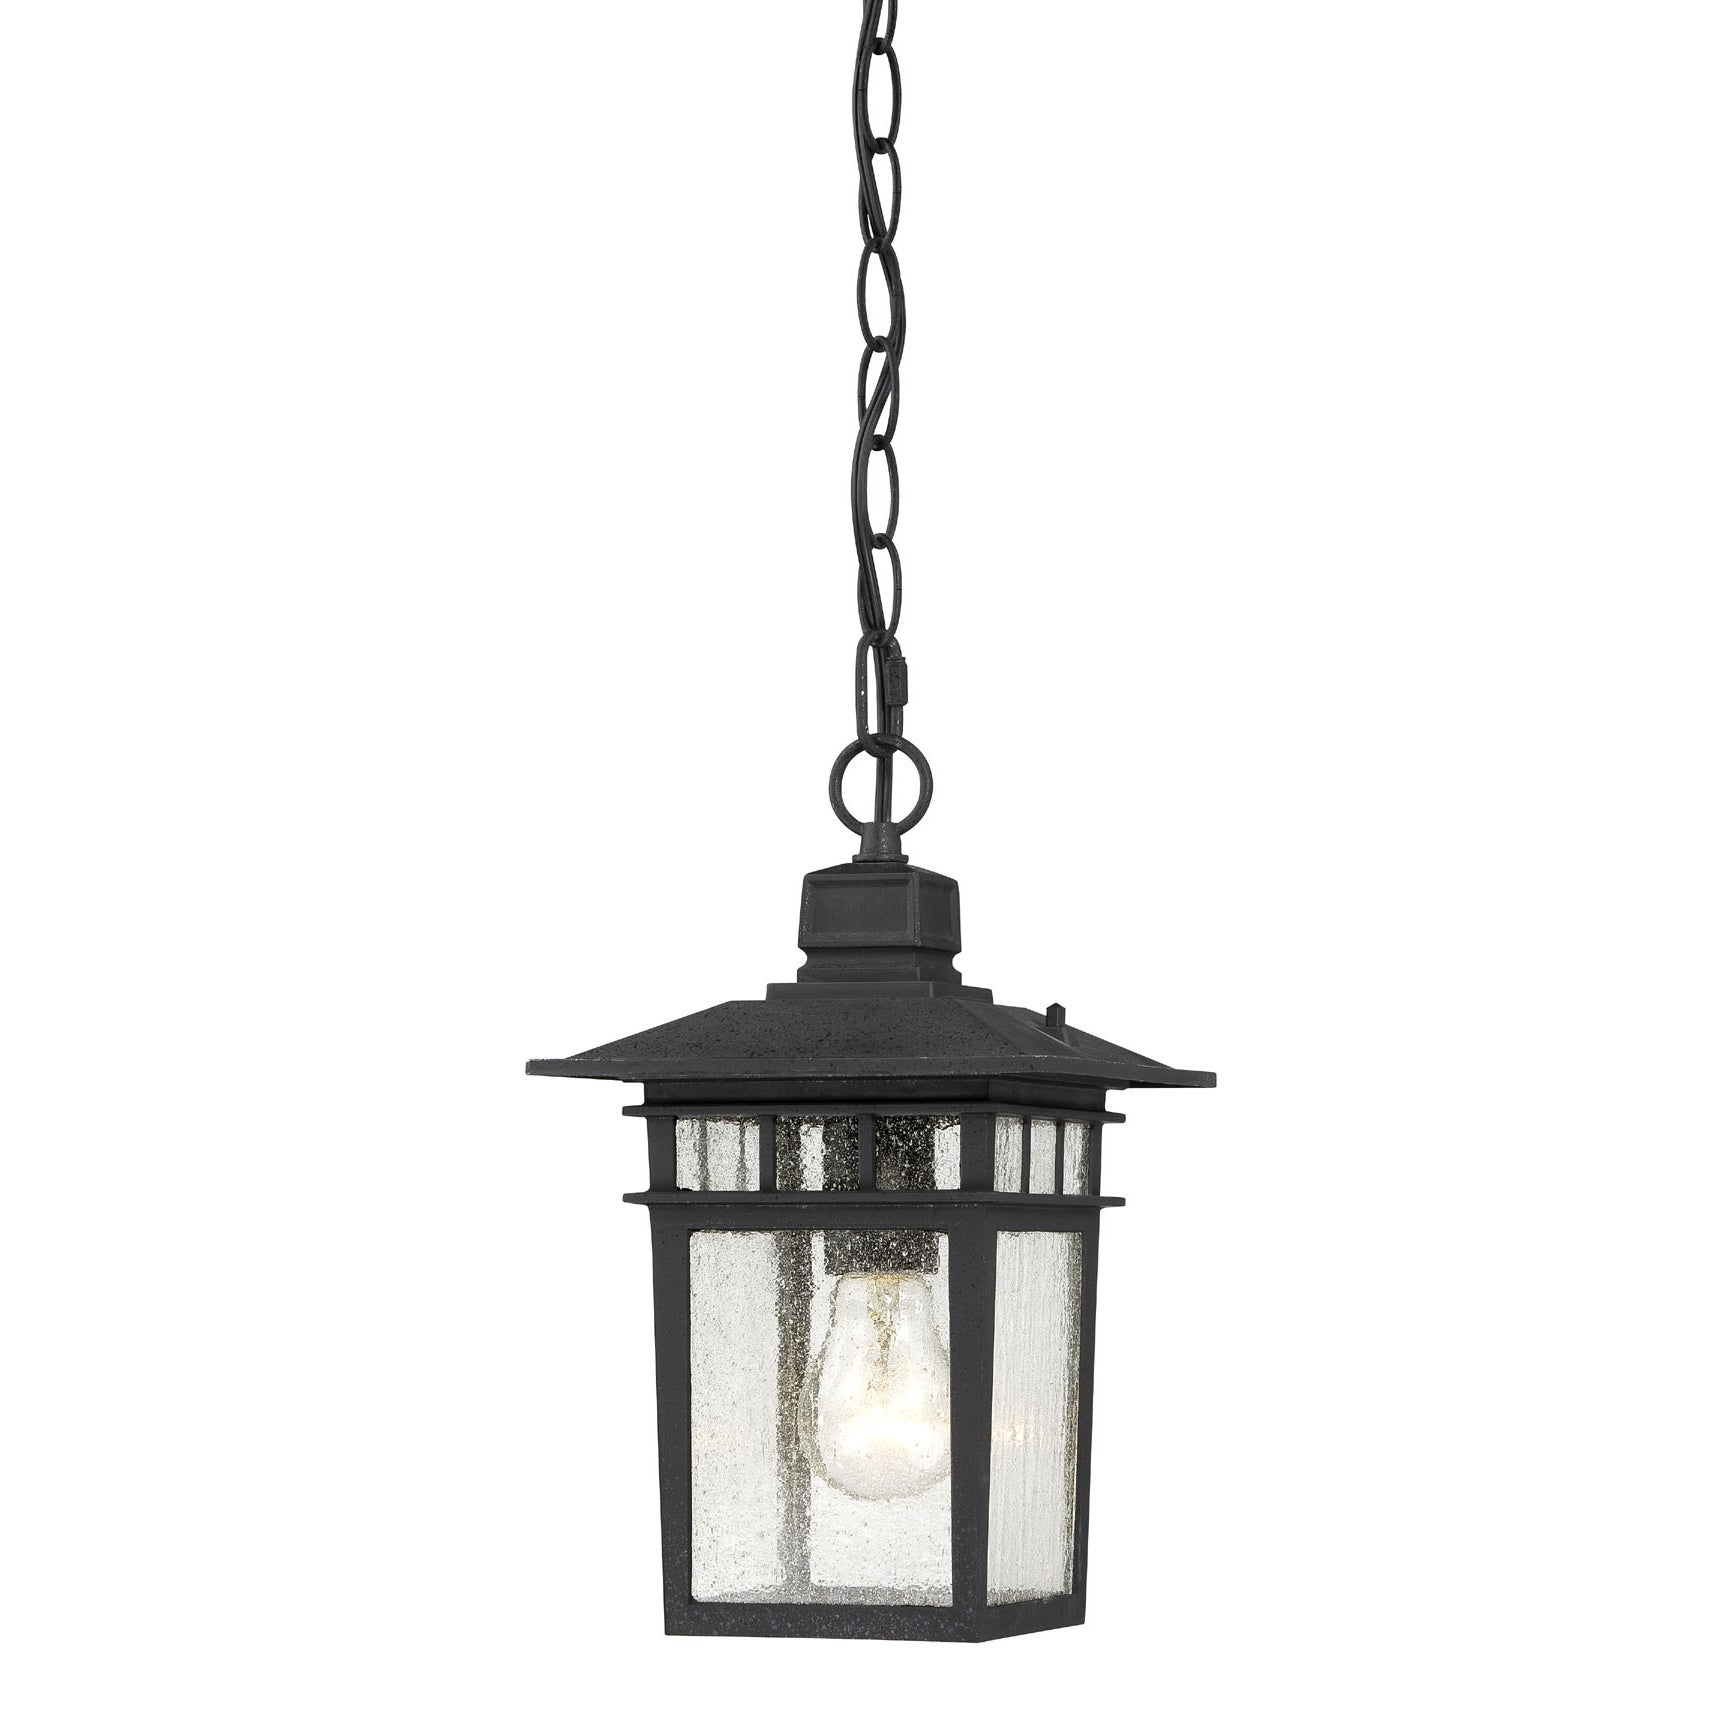 Nuvo Cove Neck 1-light Textured Black 12-inch Hanging Fixture